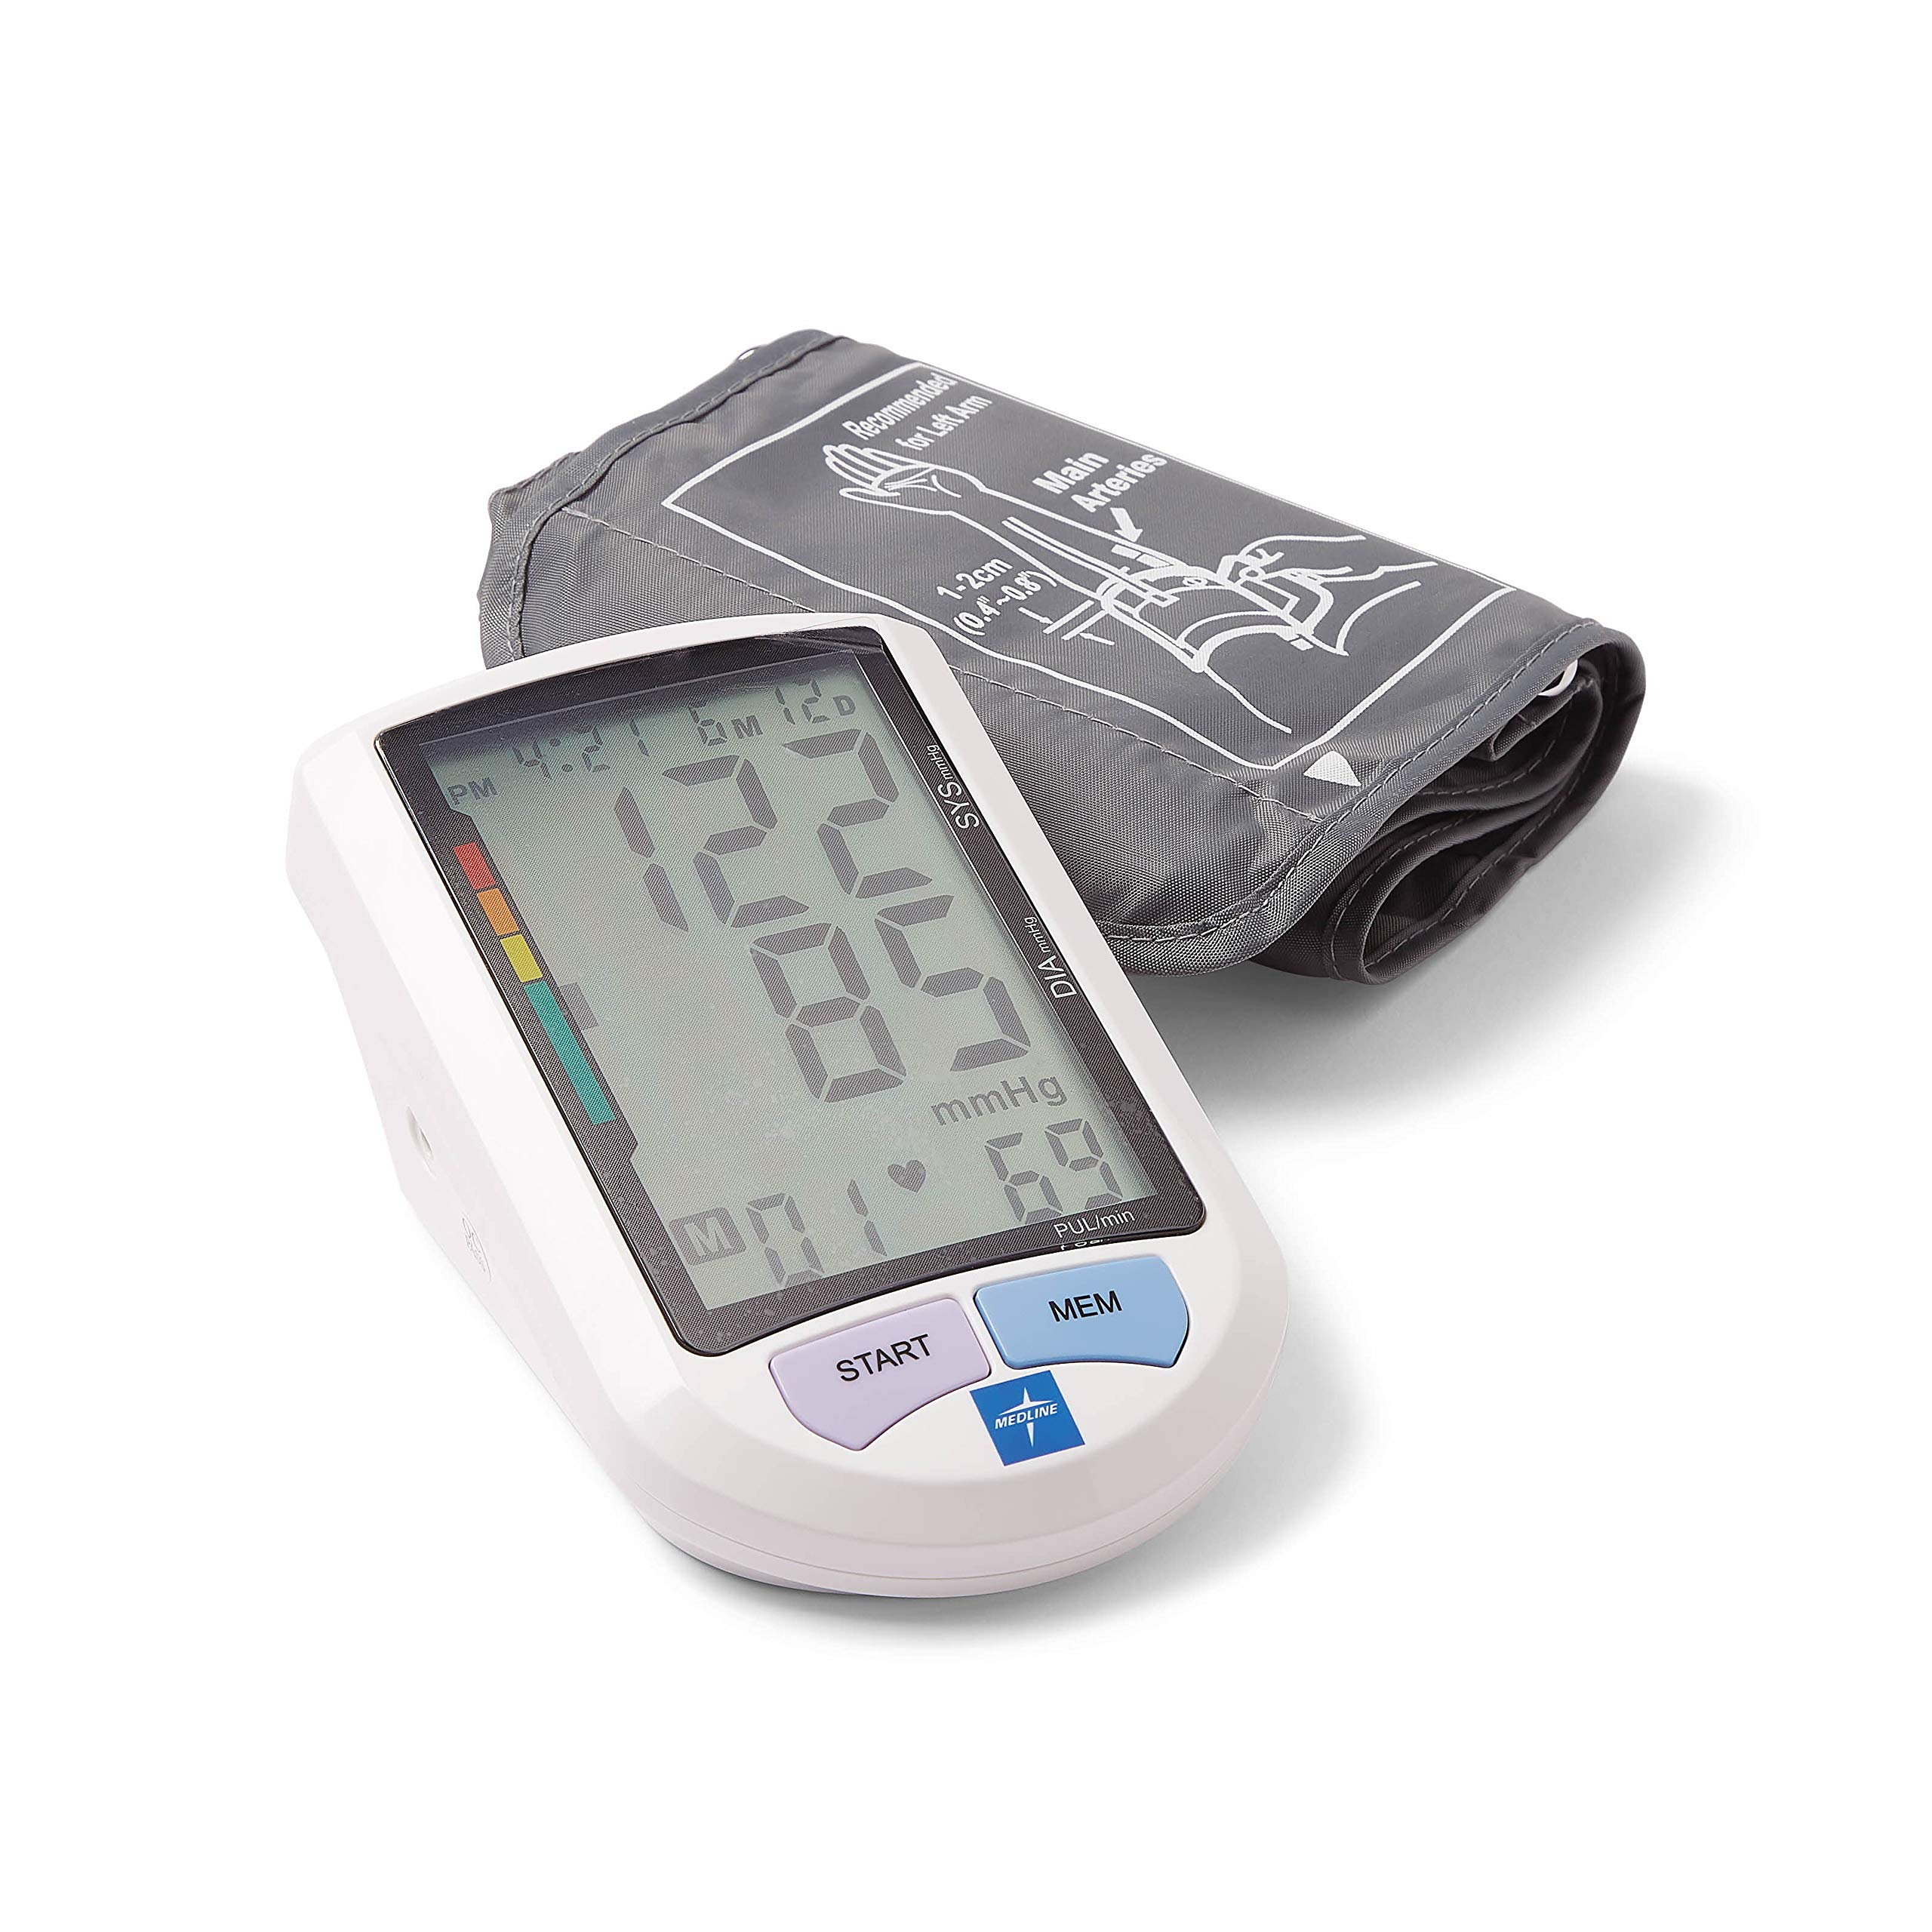 Medline Automatic Digital Blood Pressure Monitor, Universal Upper Arm Adult Cuff, 8.5''-16.5'' BP Cuff Size, Batteries Included, 90 Memory Readings, Great for Home Use or Professional Medical Use